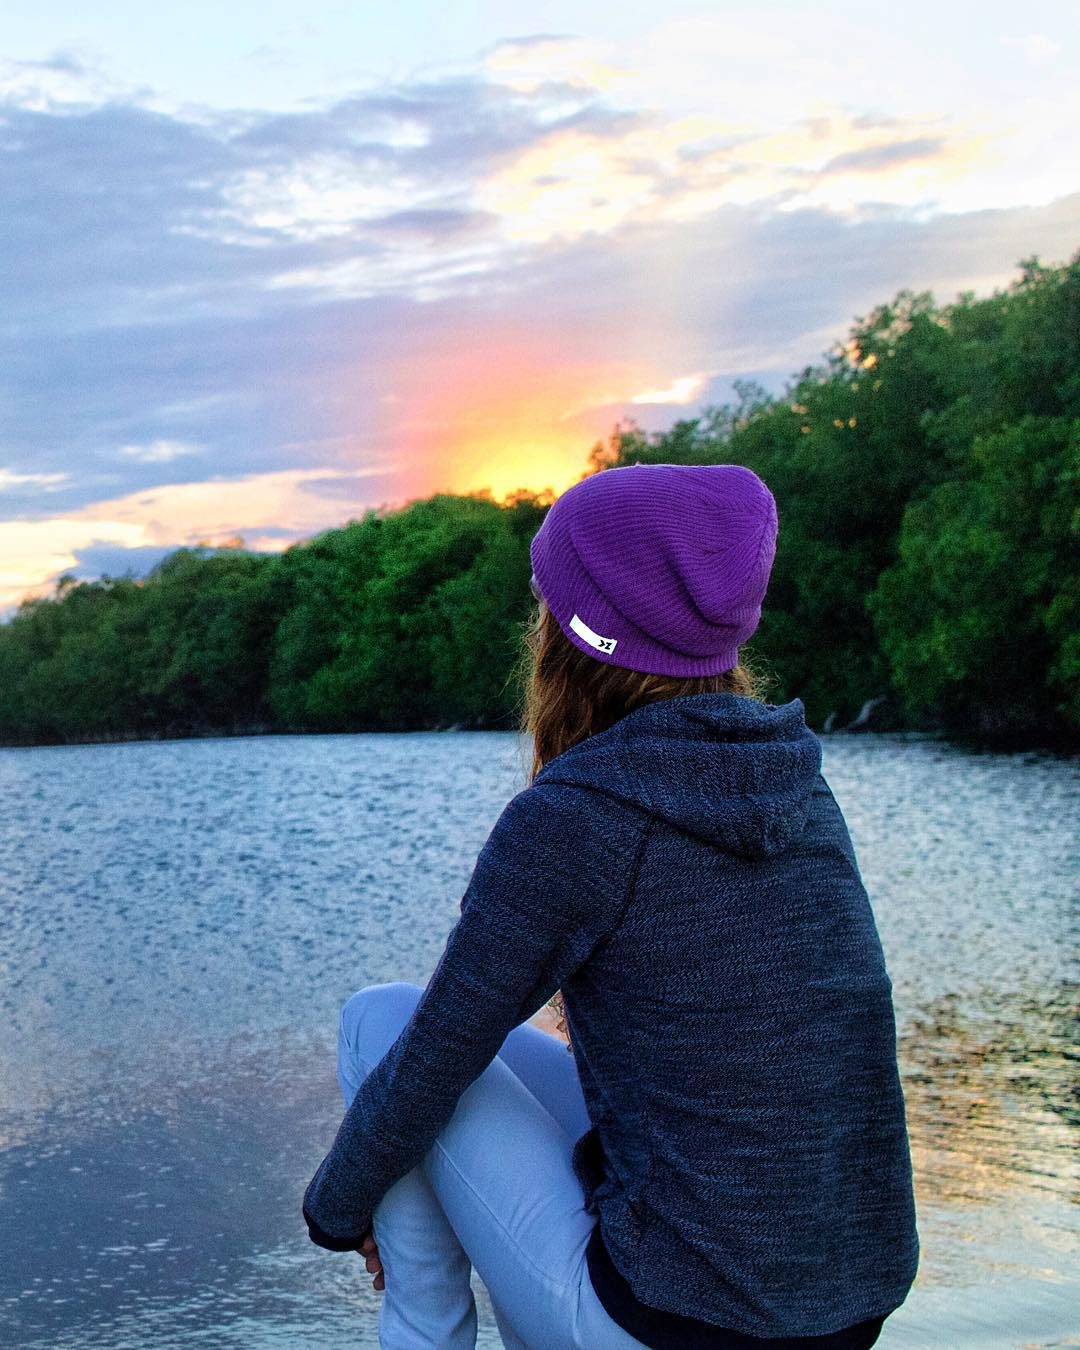 Chilly sunsets by the water CYBER40 = 40% OFF STOREWIDE  Sporting the Lilac beanie while watching the sunset, @amparomaluendez enjoys her night #Kameleonz #Sunset #BeanieSeason #CyberMonday